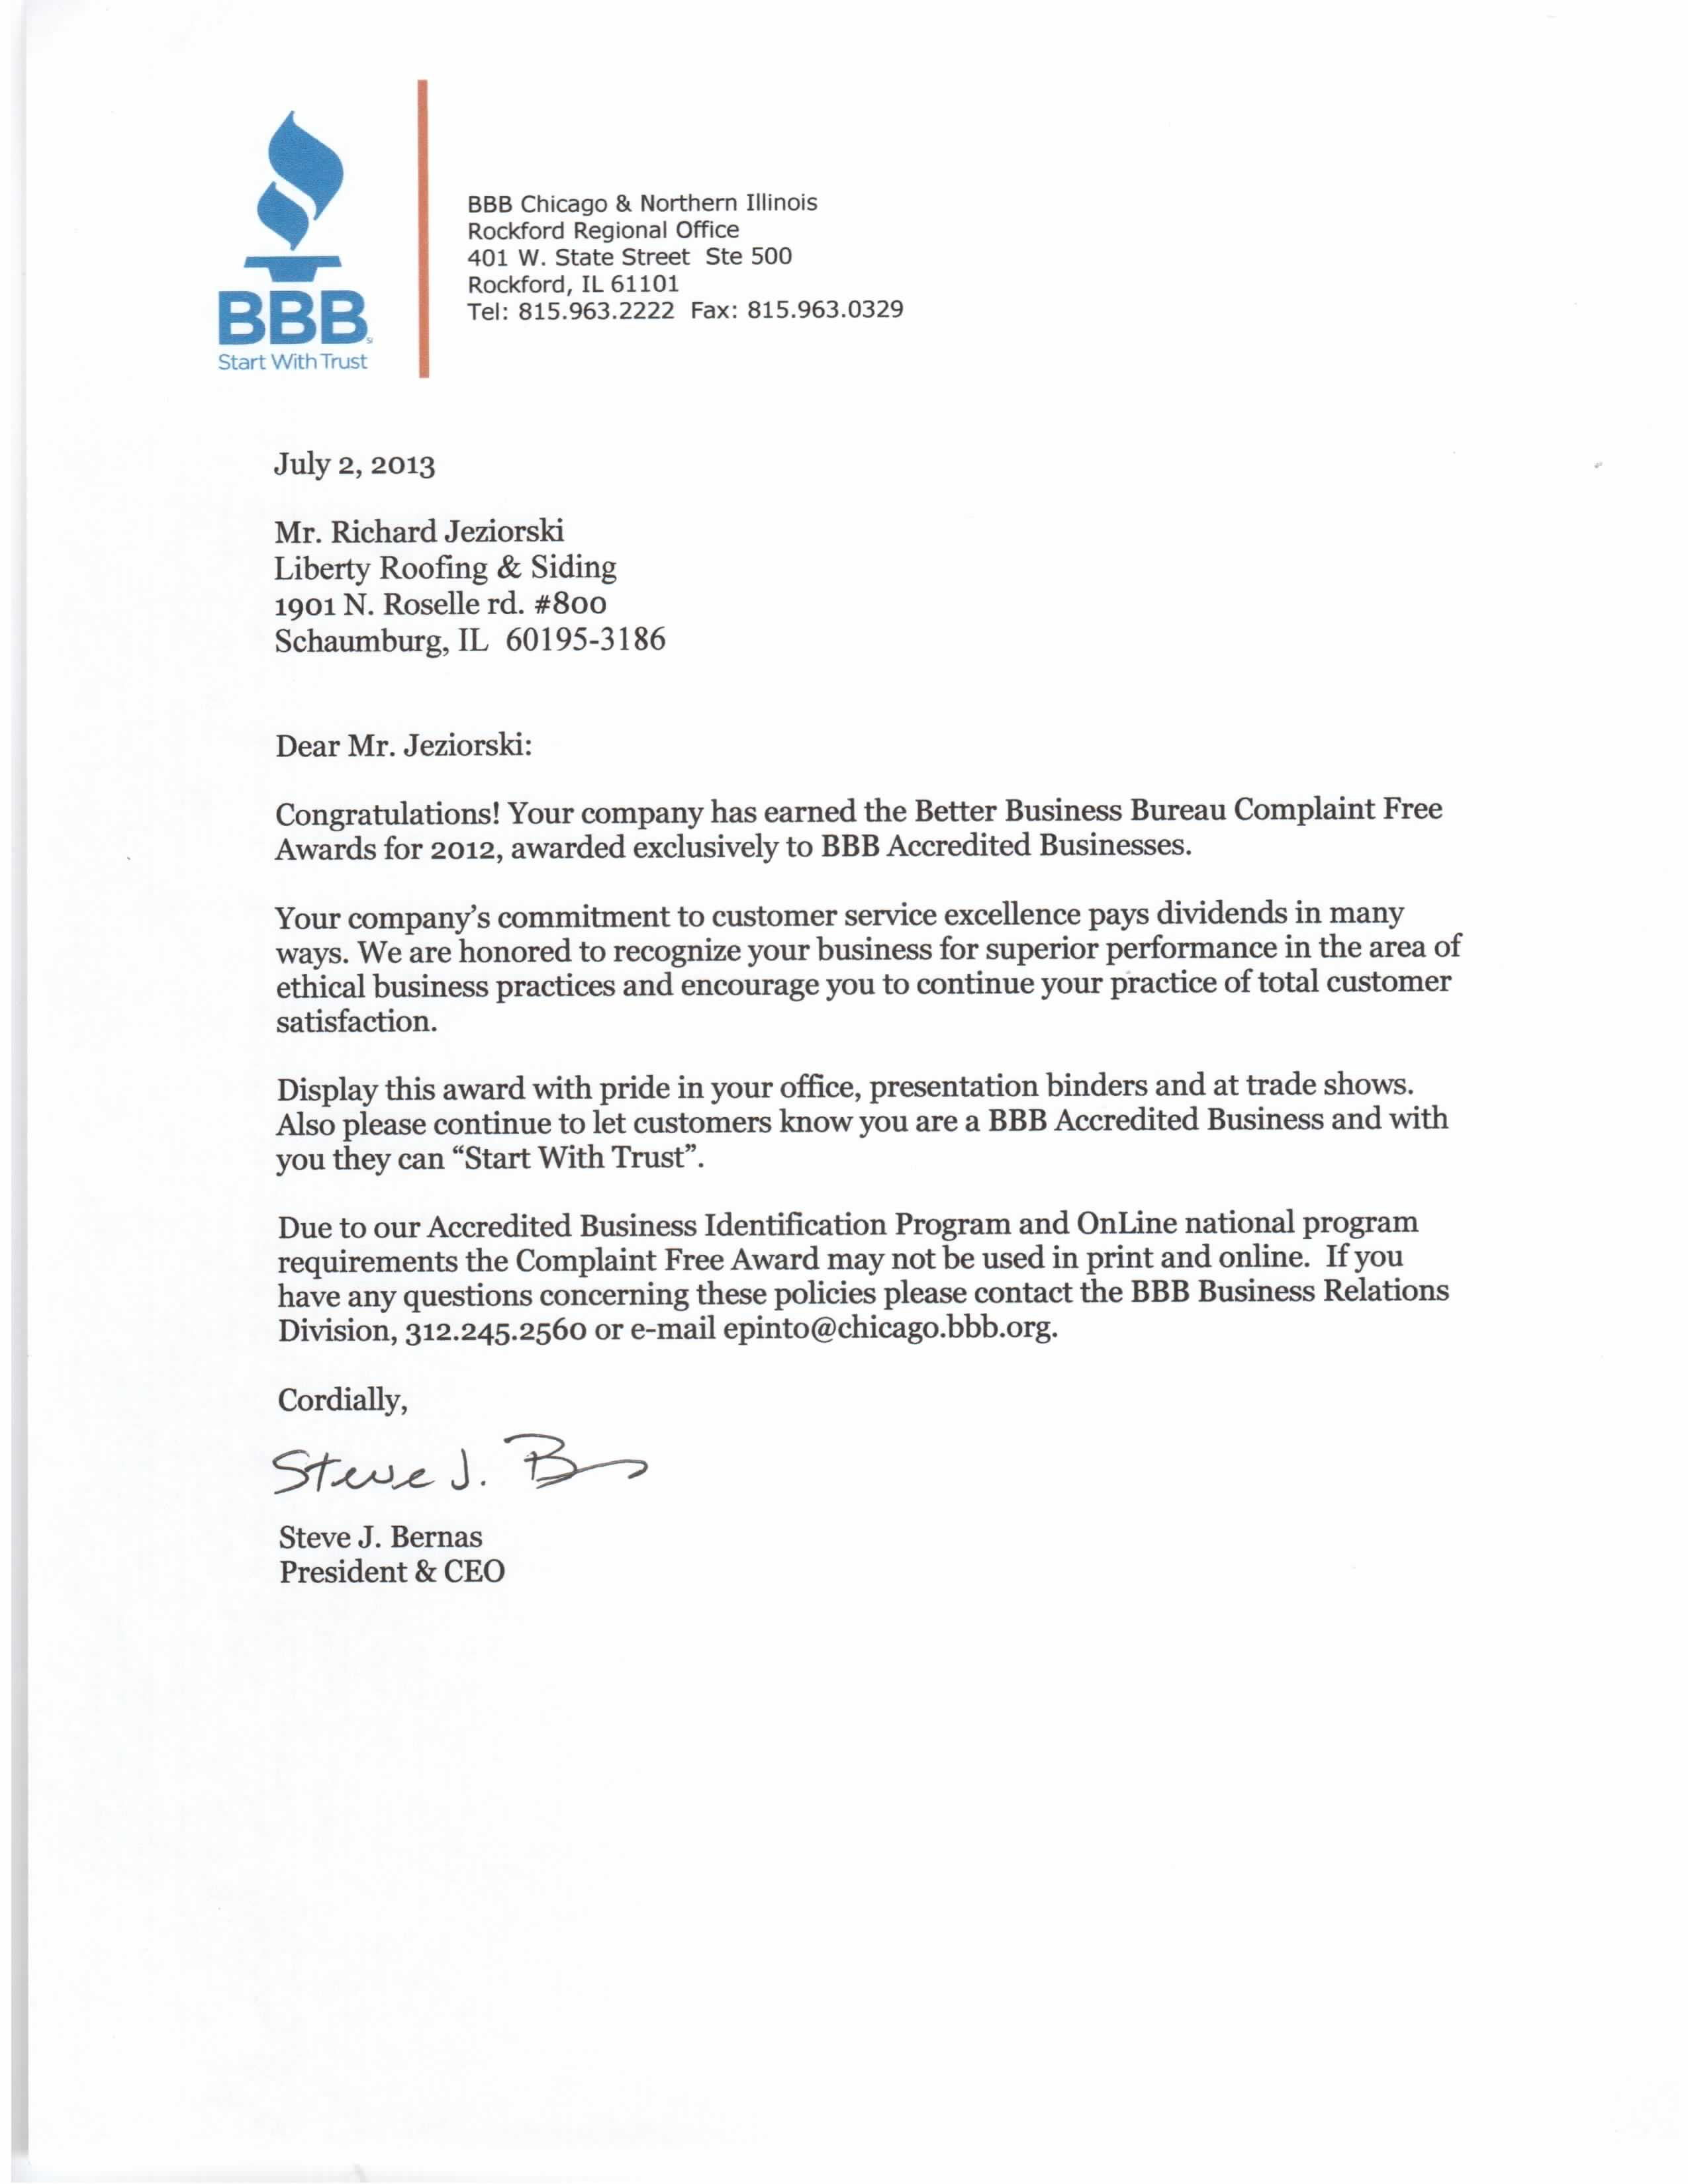 Liberty Roofing & Siding Inc. BBB complaint free award - new roof